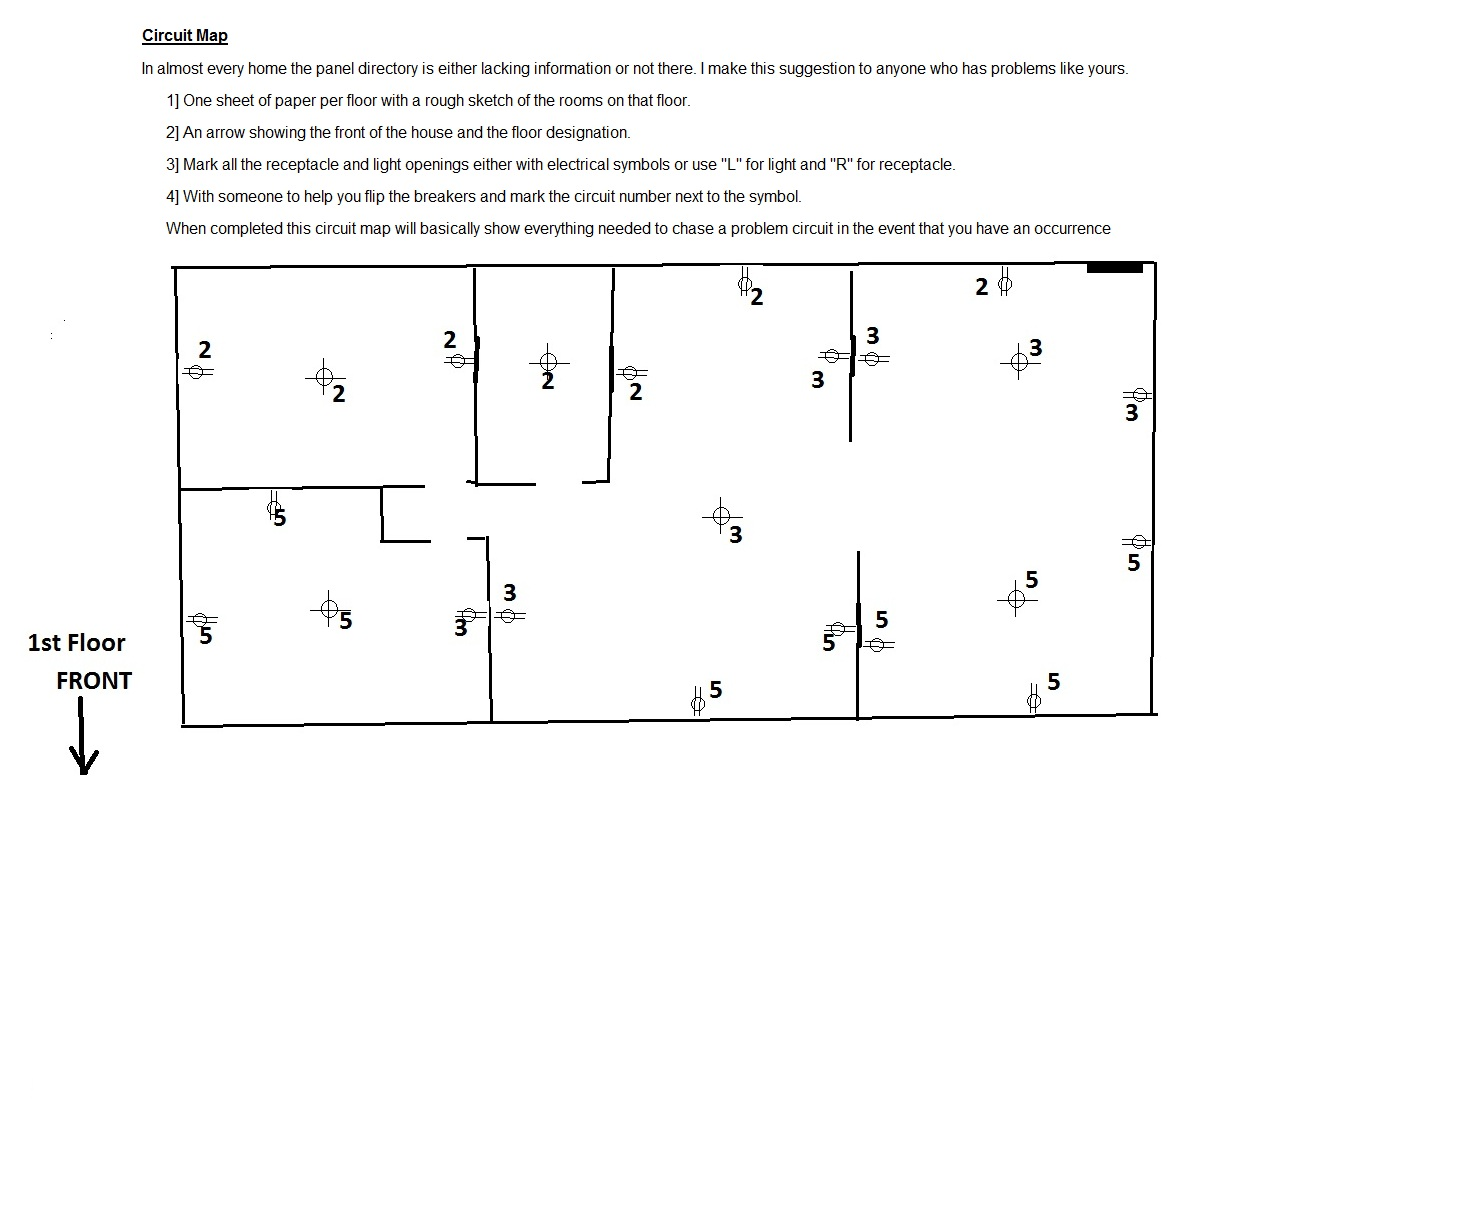 Can I Use Existing Wireing For Ny New Garage Door Opener If So What Overhead Wiring Diagram Gm 3 1 Graphic